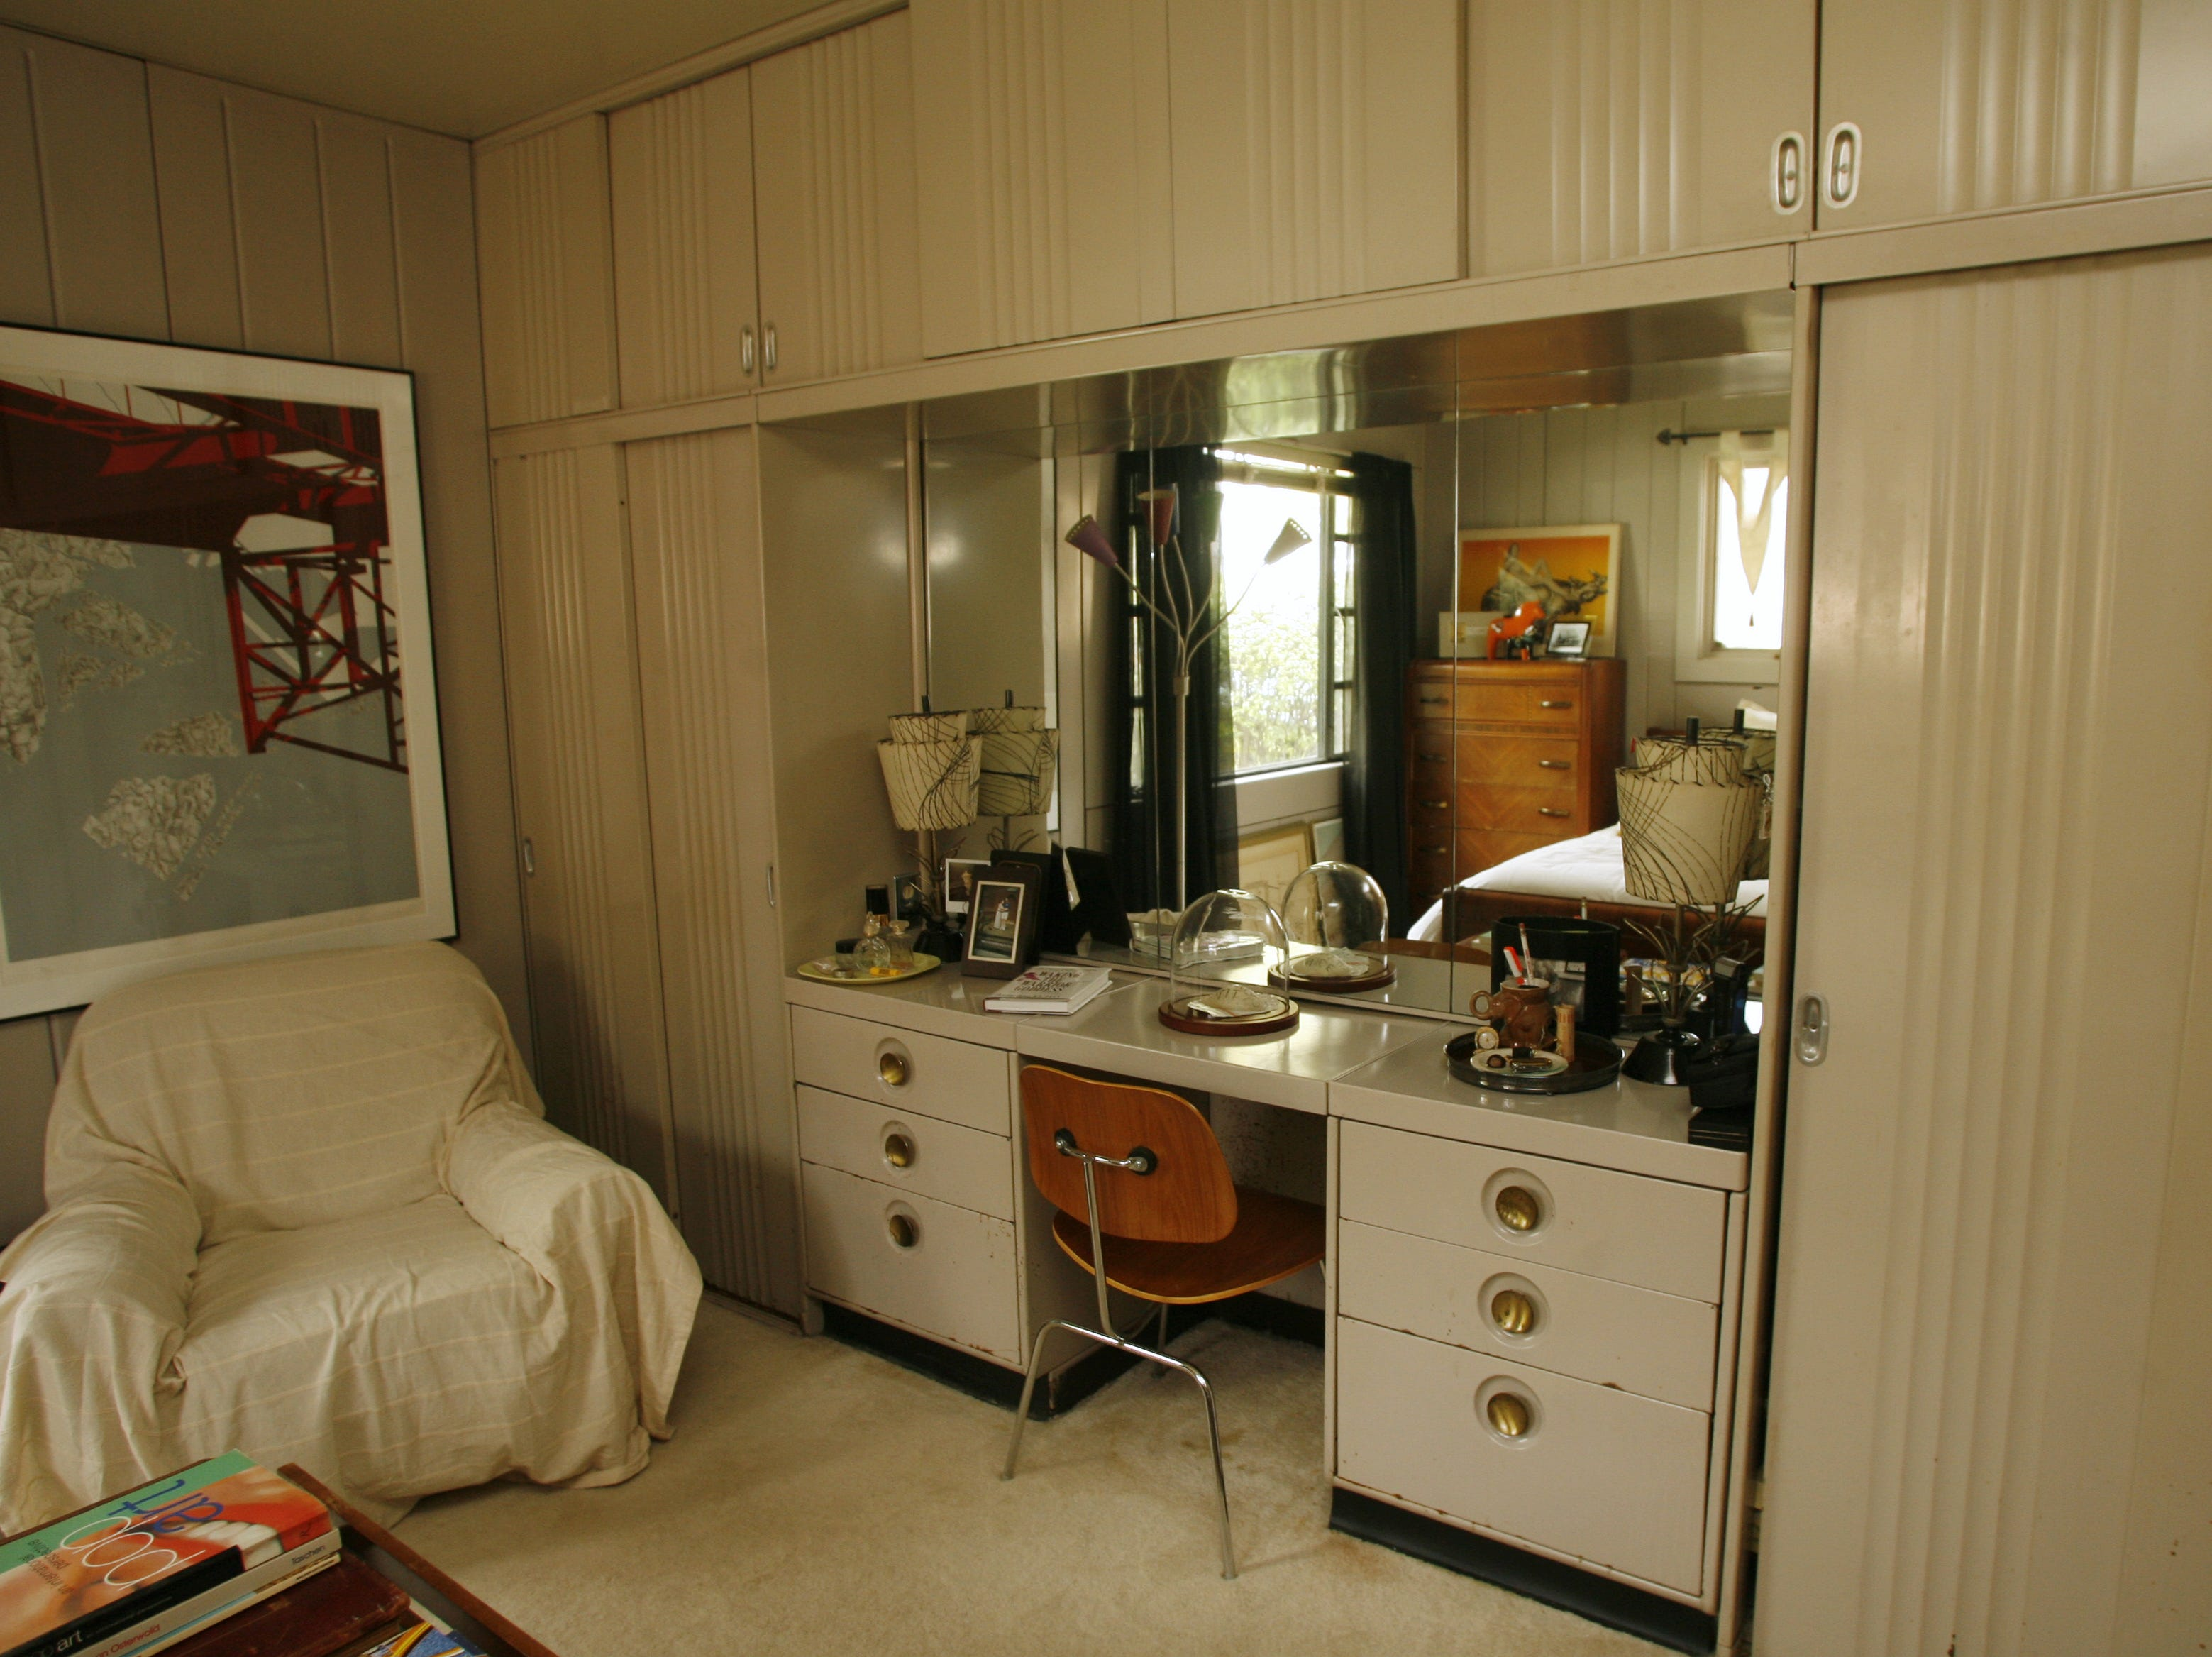 A built-in vanity in Stephanie and Michael O'Neal's Lustron home shown in this file photo from 2006.